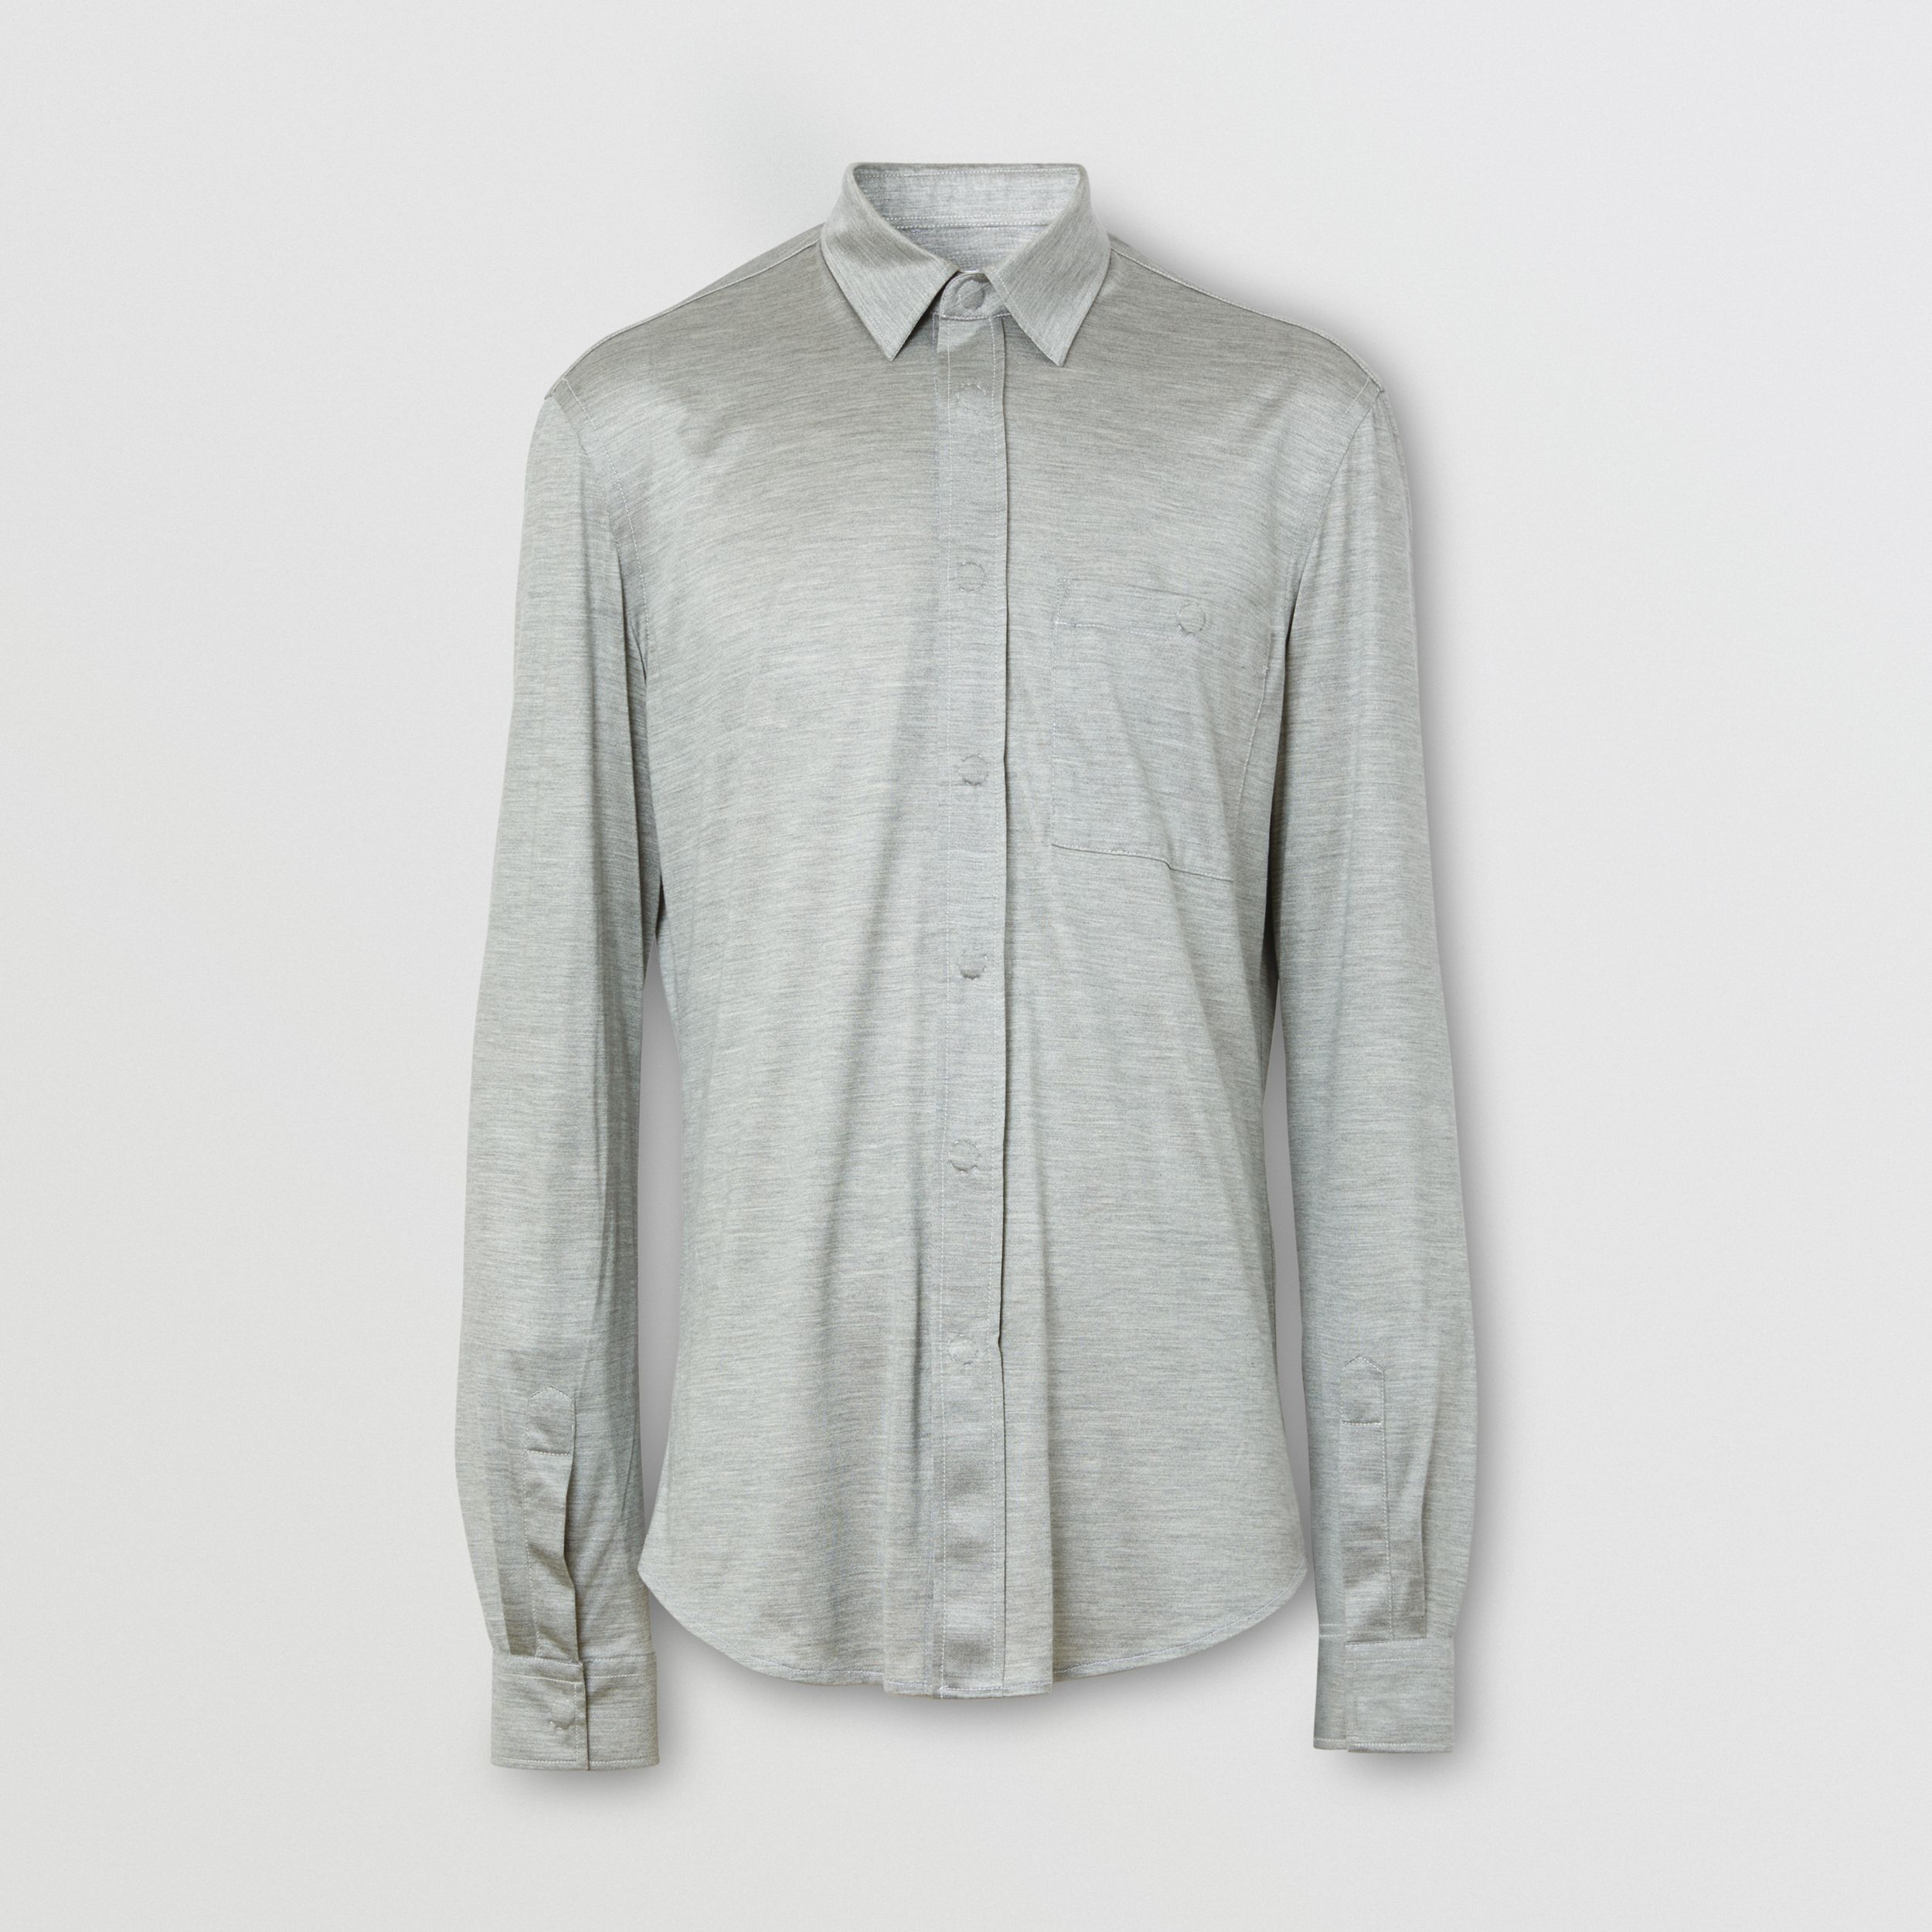 Classic Fit Silk Jersey Shirt in Light Pebble Grey - Men | Burberry - 4